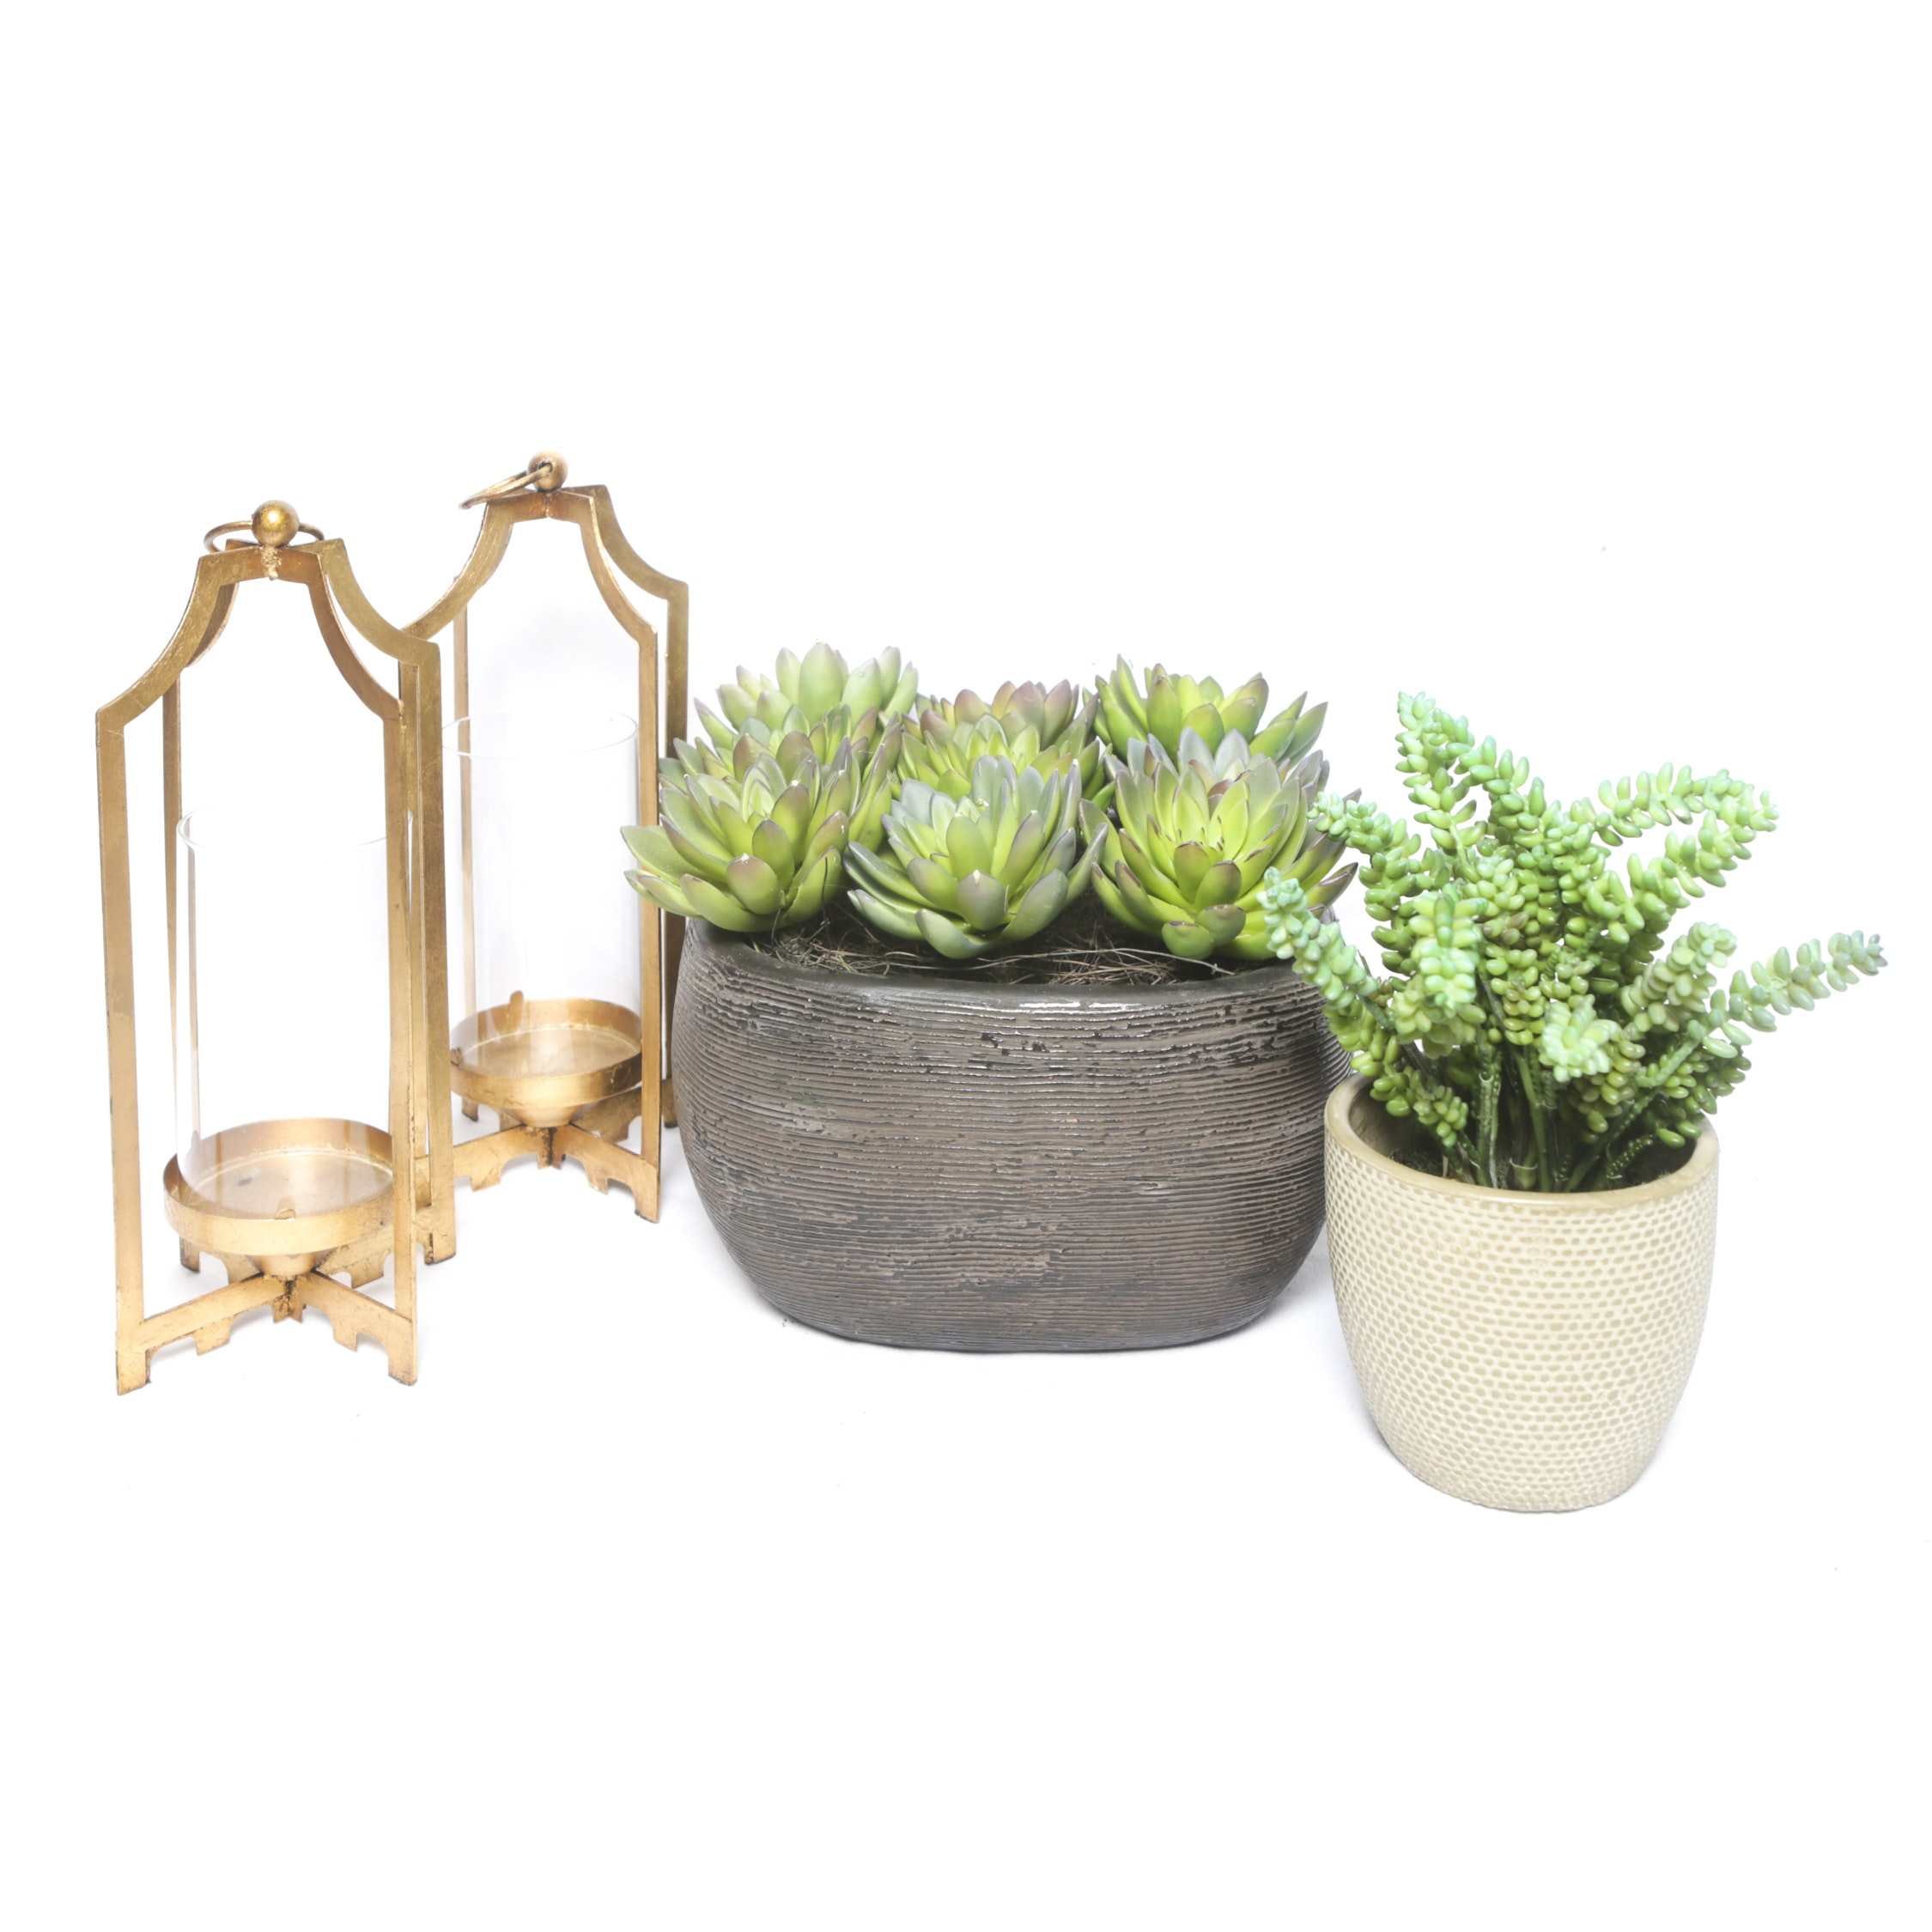 Gold Tone Candle Lanterns and Faux Succulents in Planters